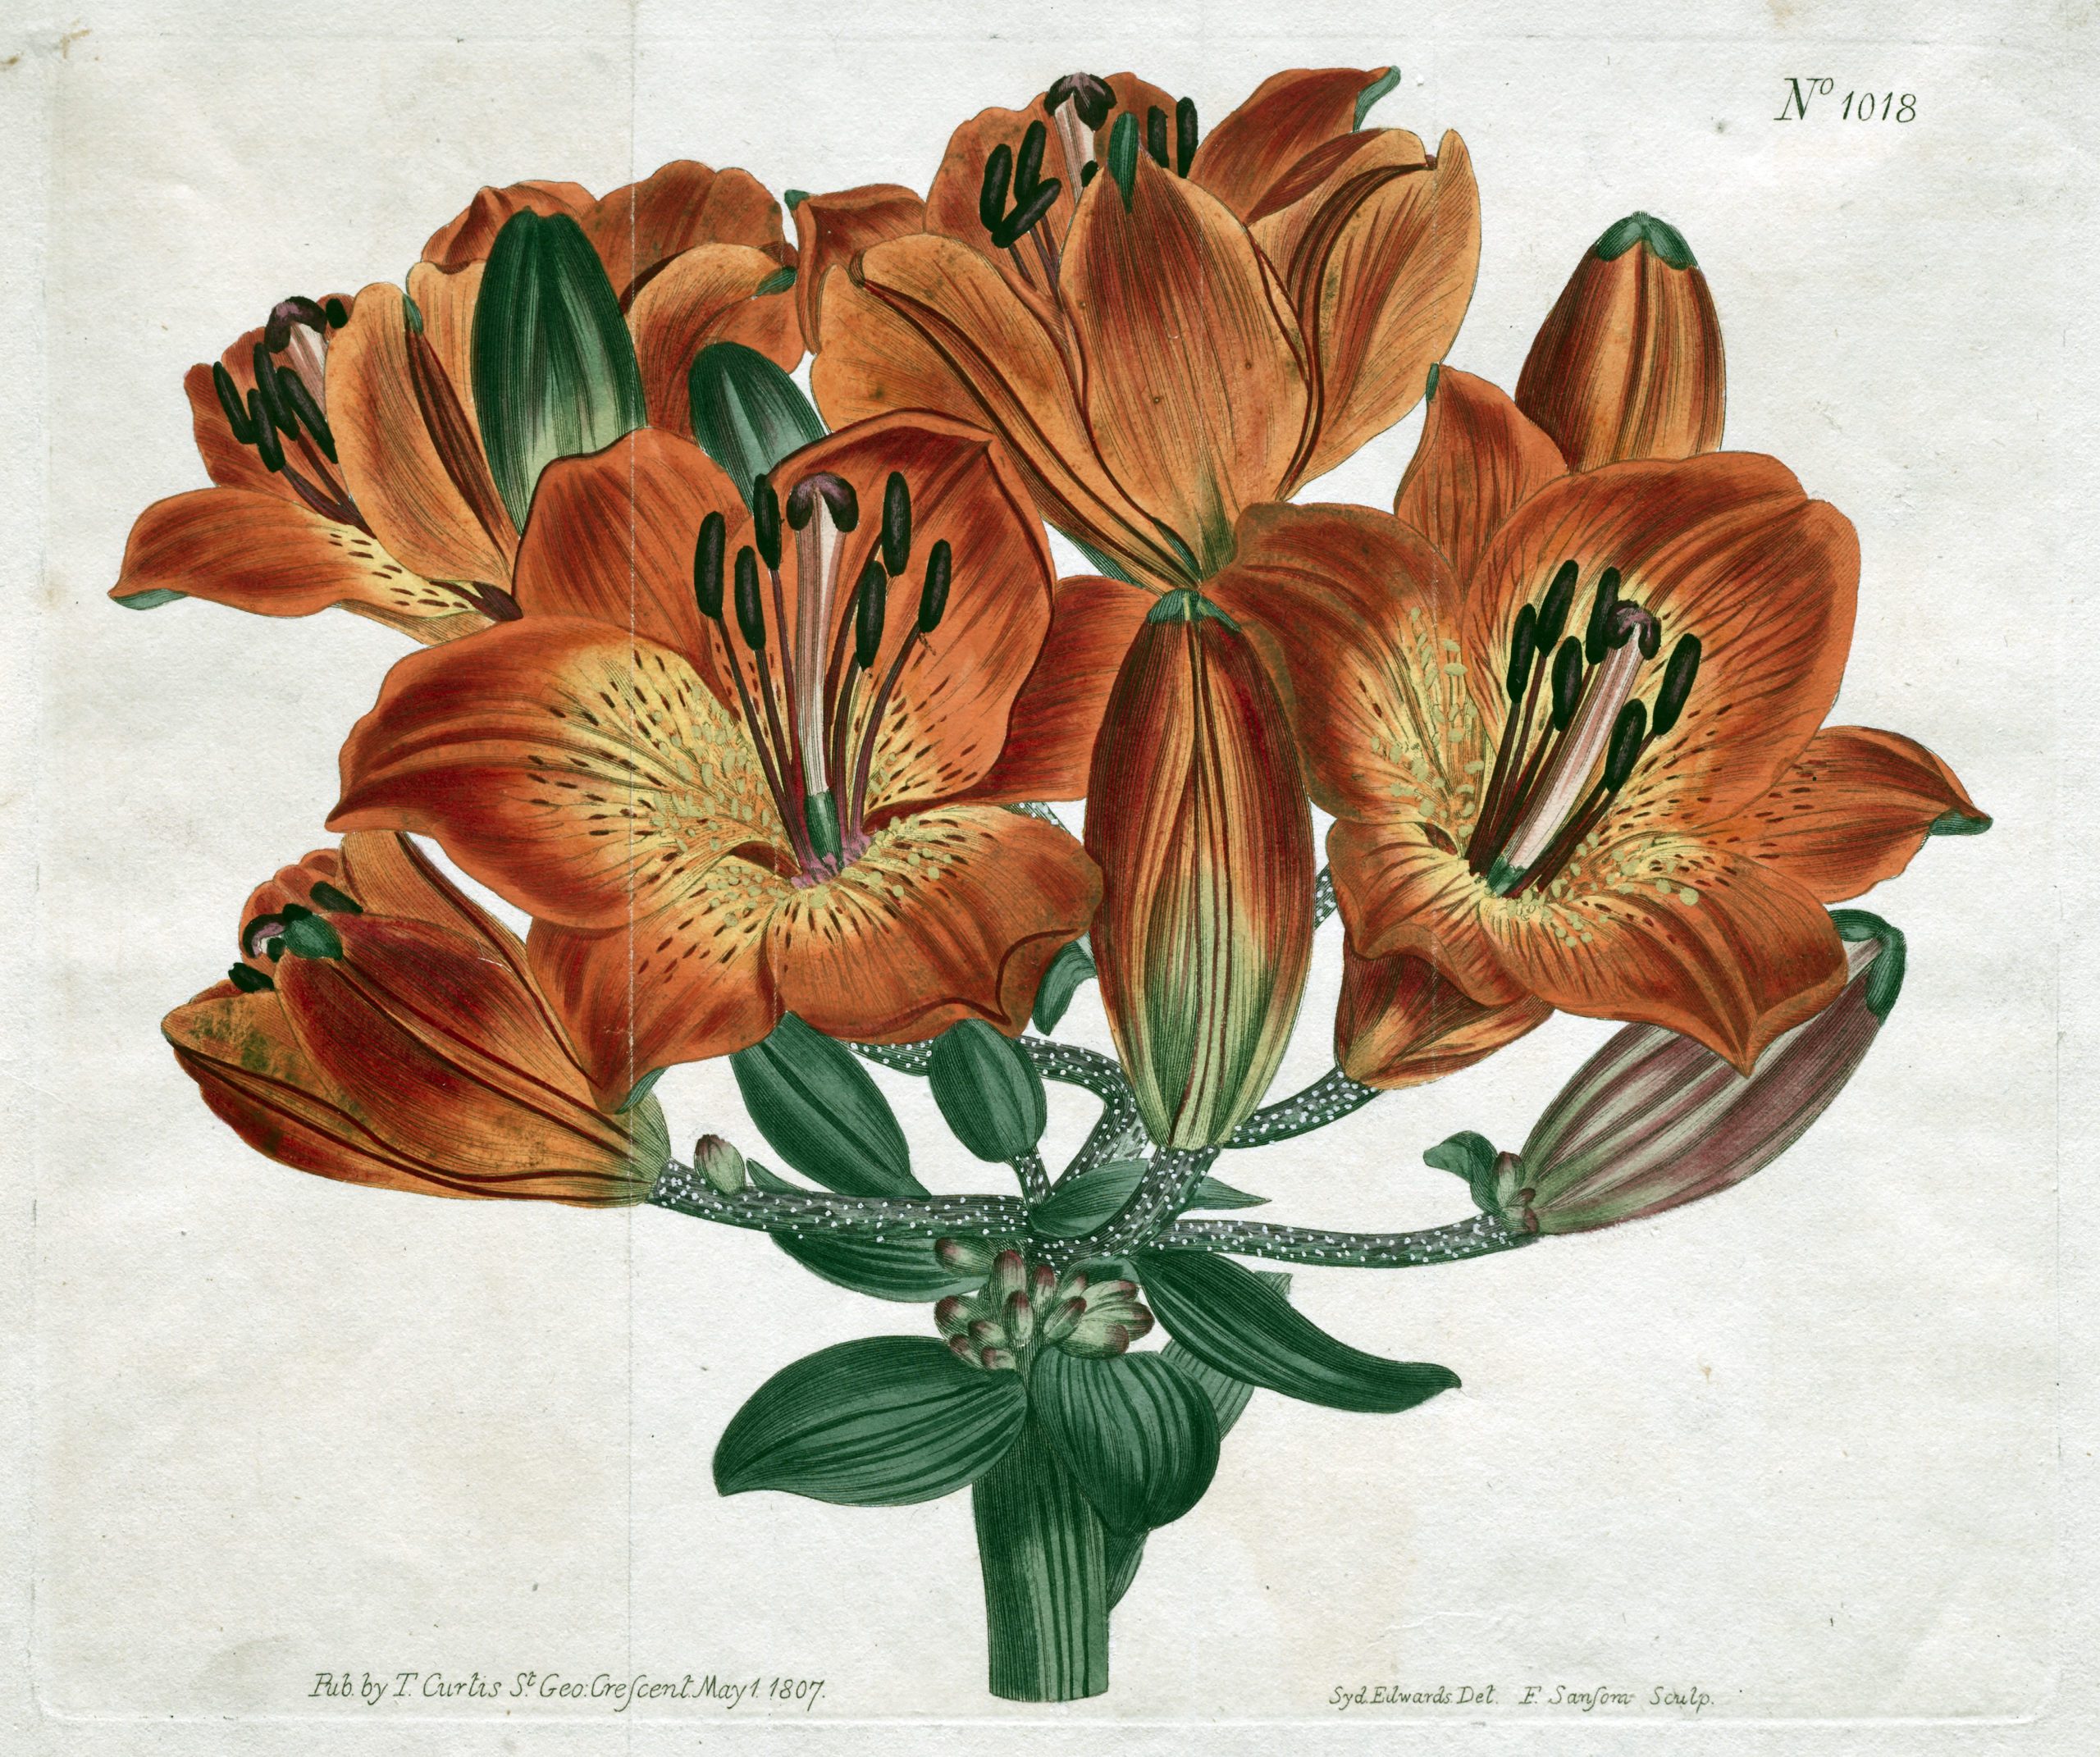 Vintage Botanical Prints - 16 in a series - The Botanical Magazine or Flower Garden Displayed: Umbel-Flowering Bulb-Bearing Orange-Lily (1807)